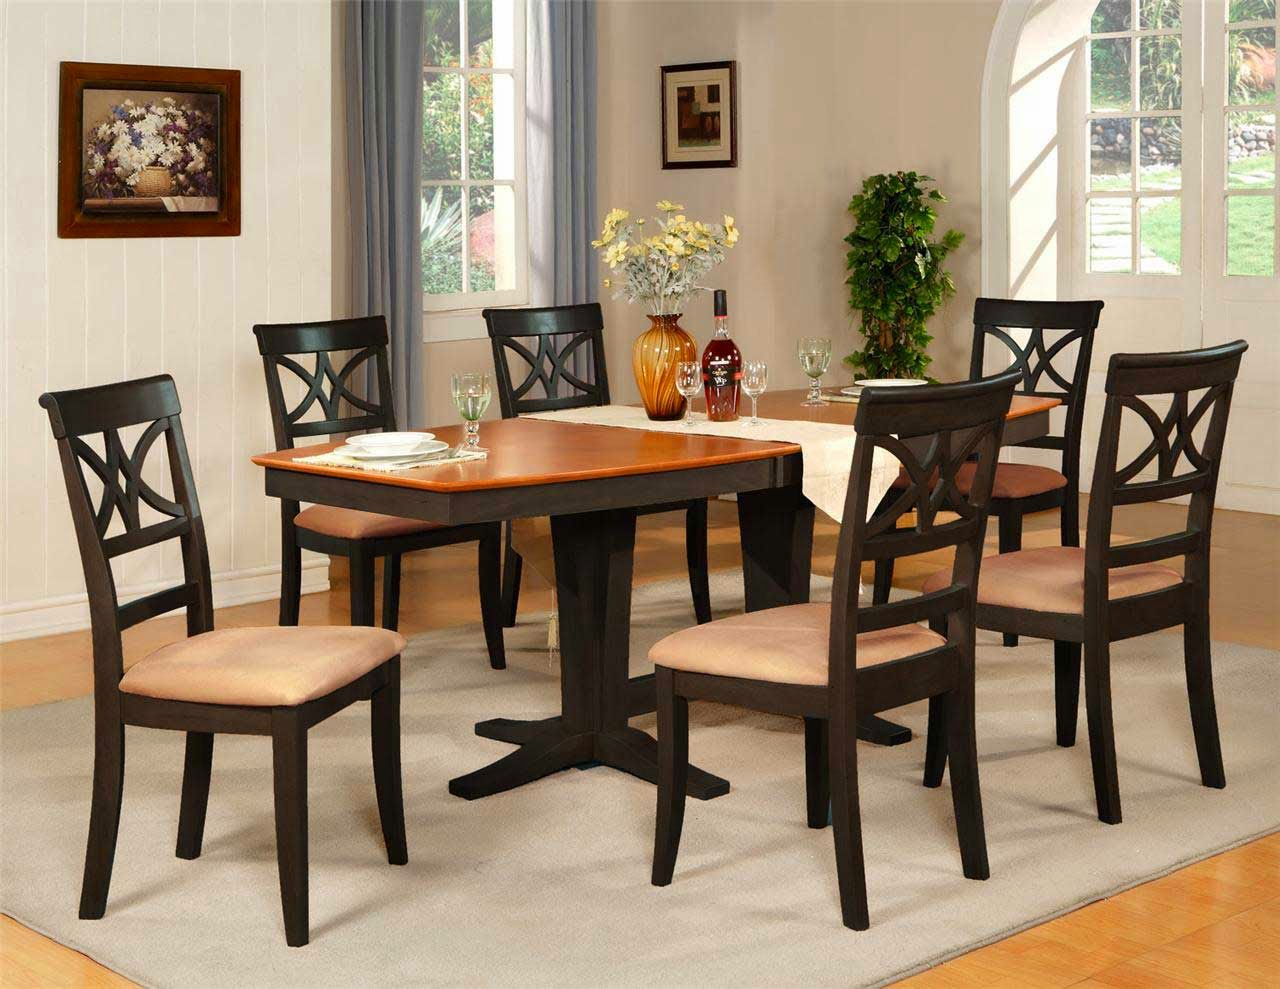 Dining room table centerpiece ideas for Dining room table 2